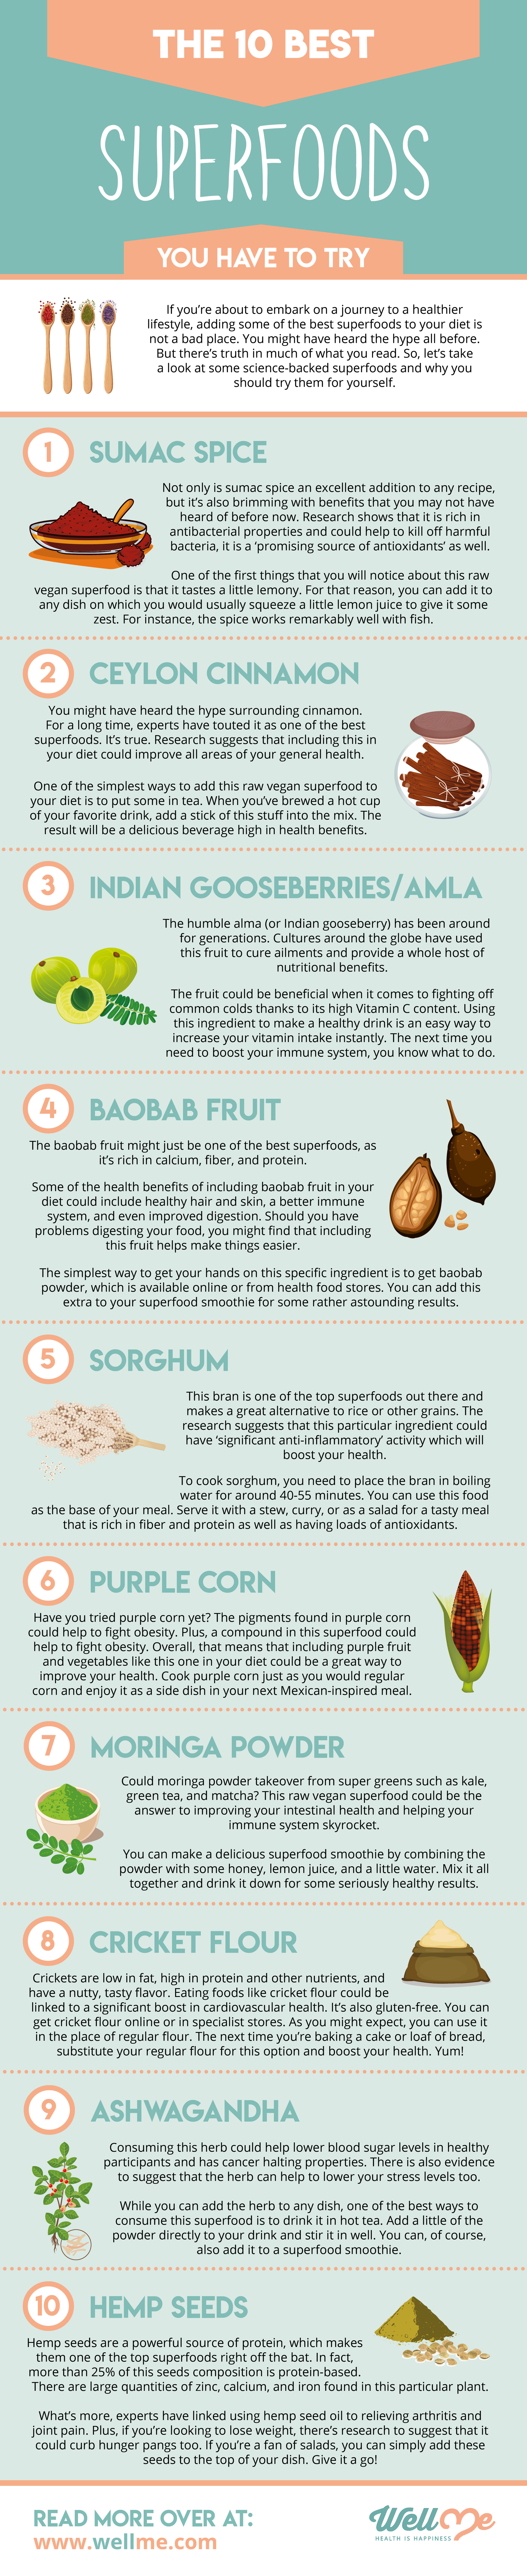 10 best superfoods infographic